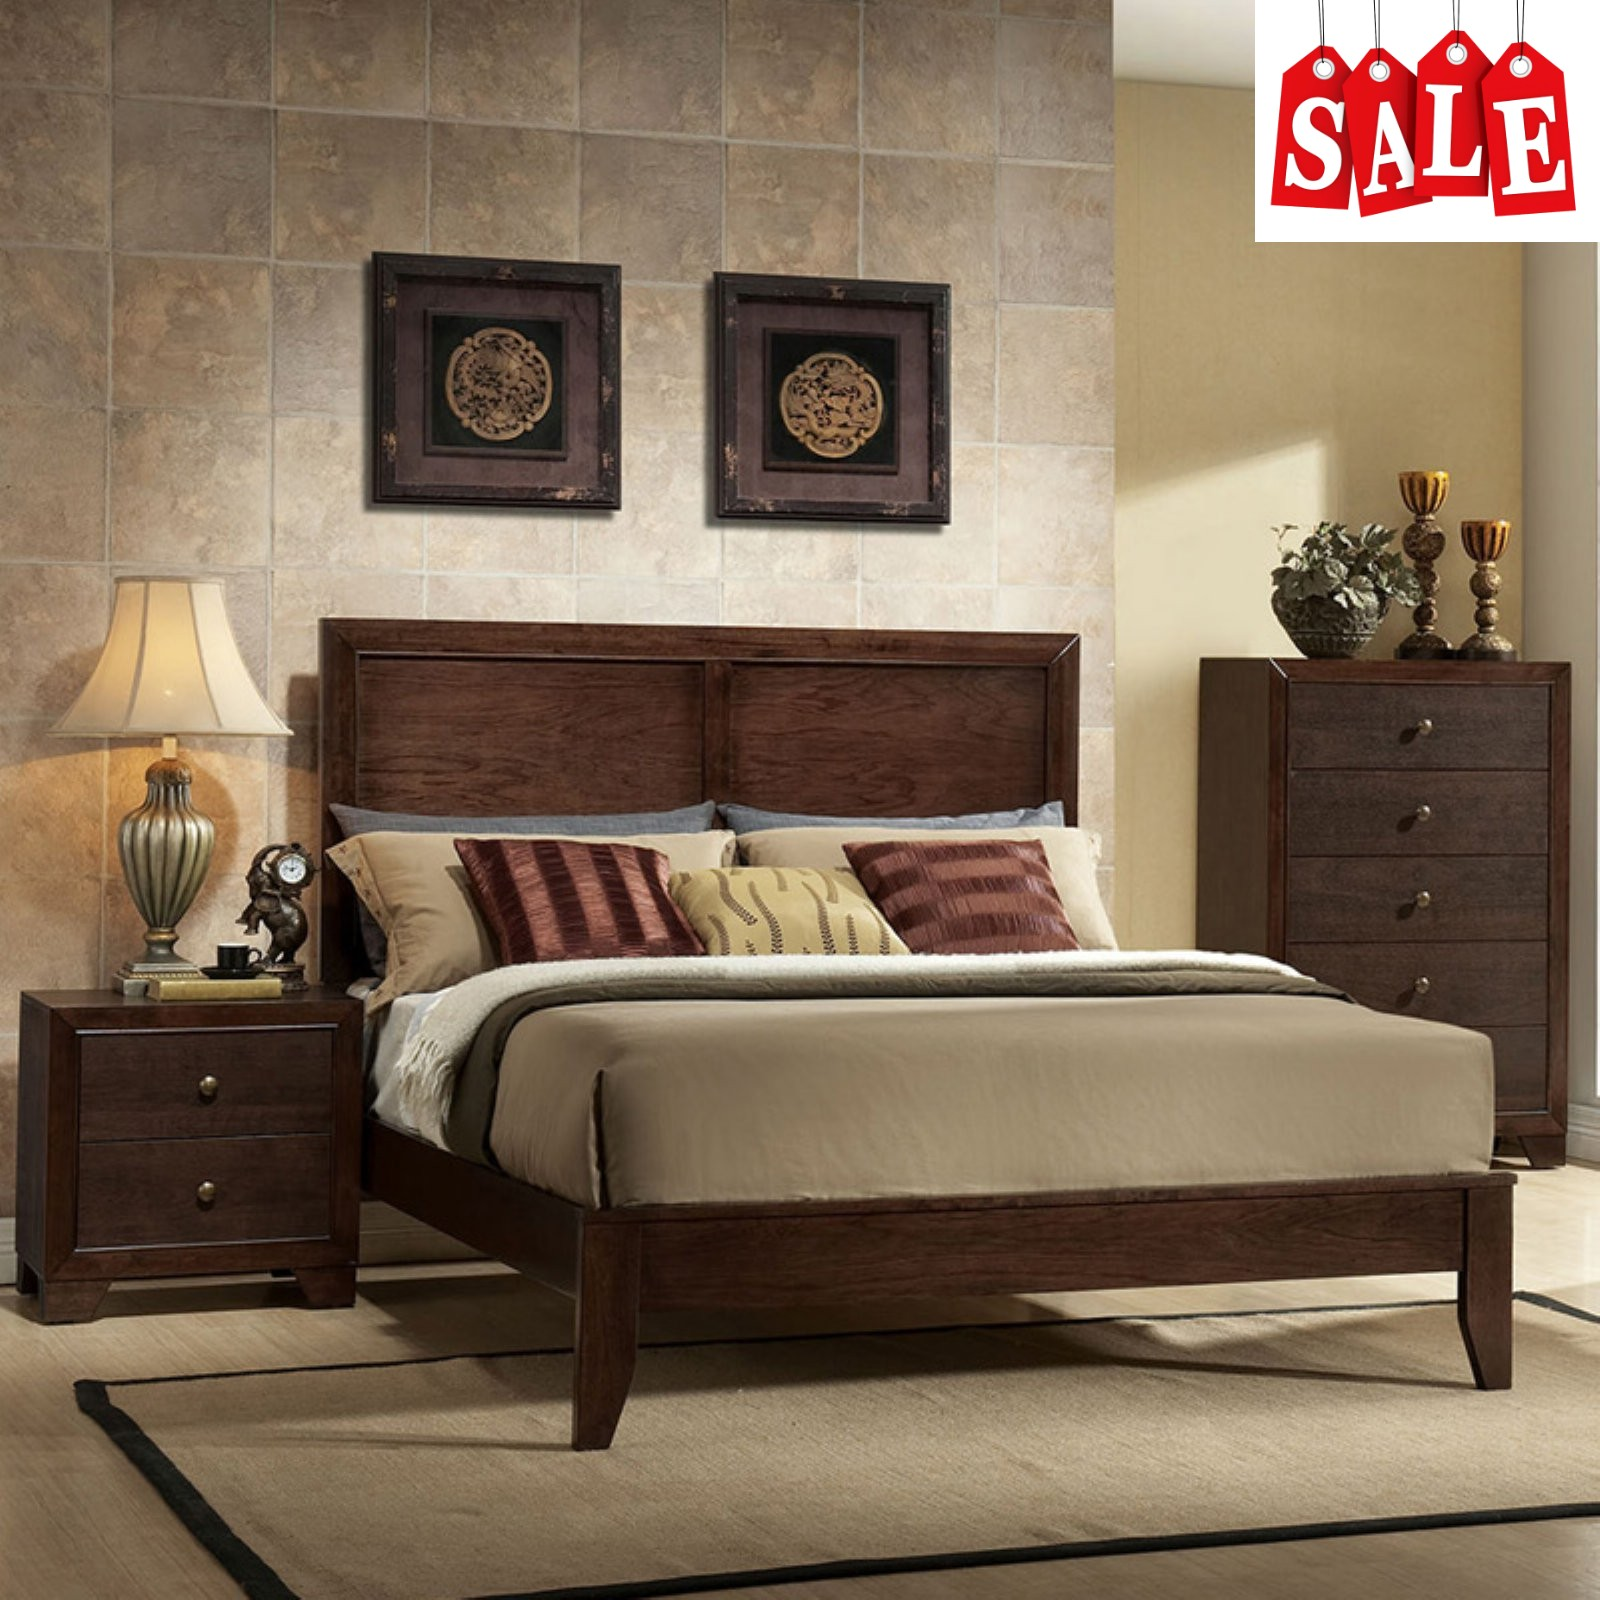 Details About Wooden King Size Bed Frame With Headboard And Low Profile Footboard Sy Brown